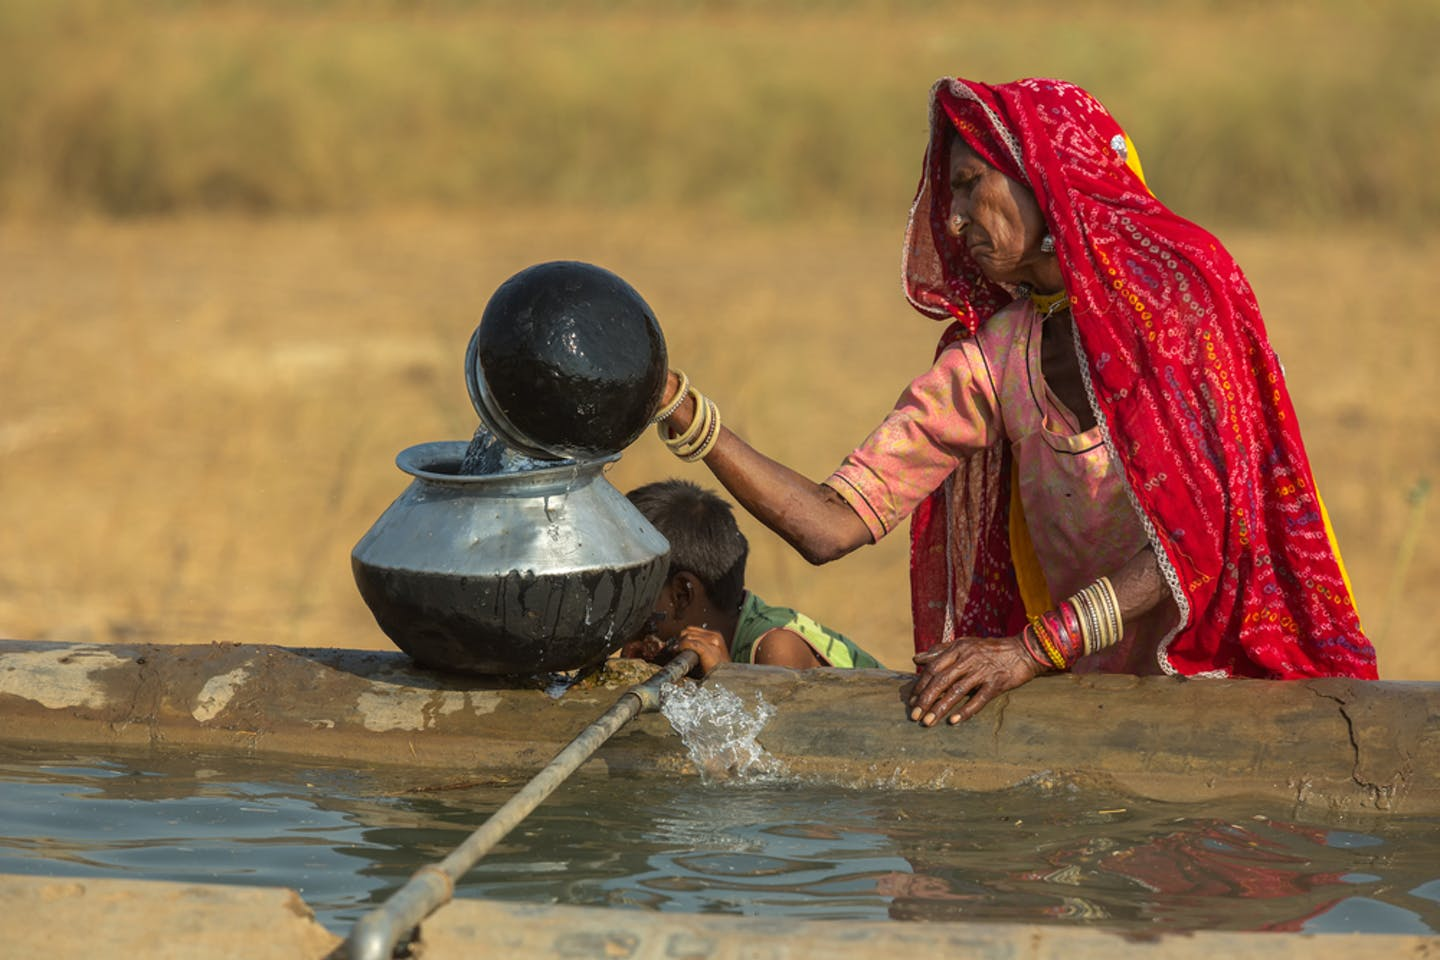 A woman fills her container with water in India.